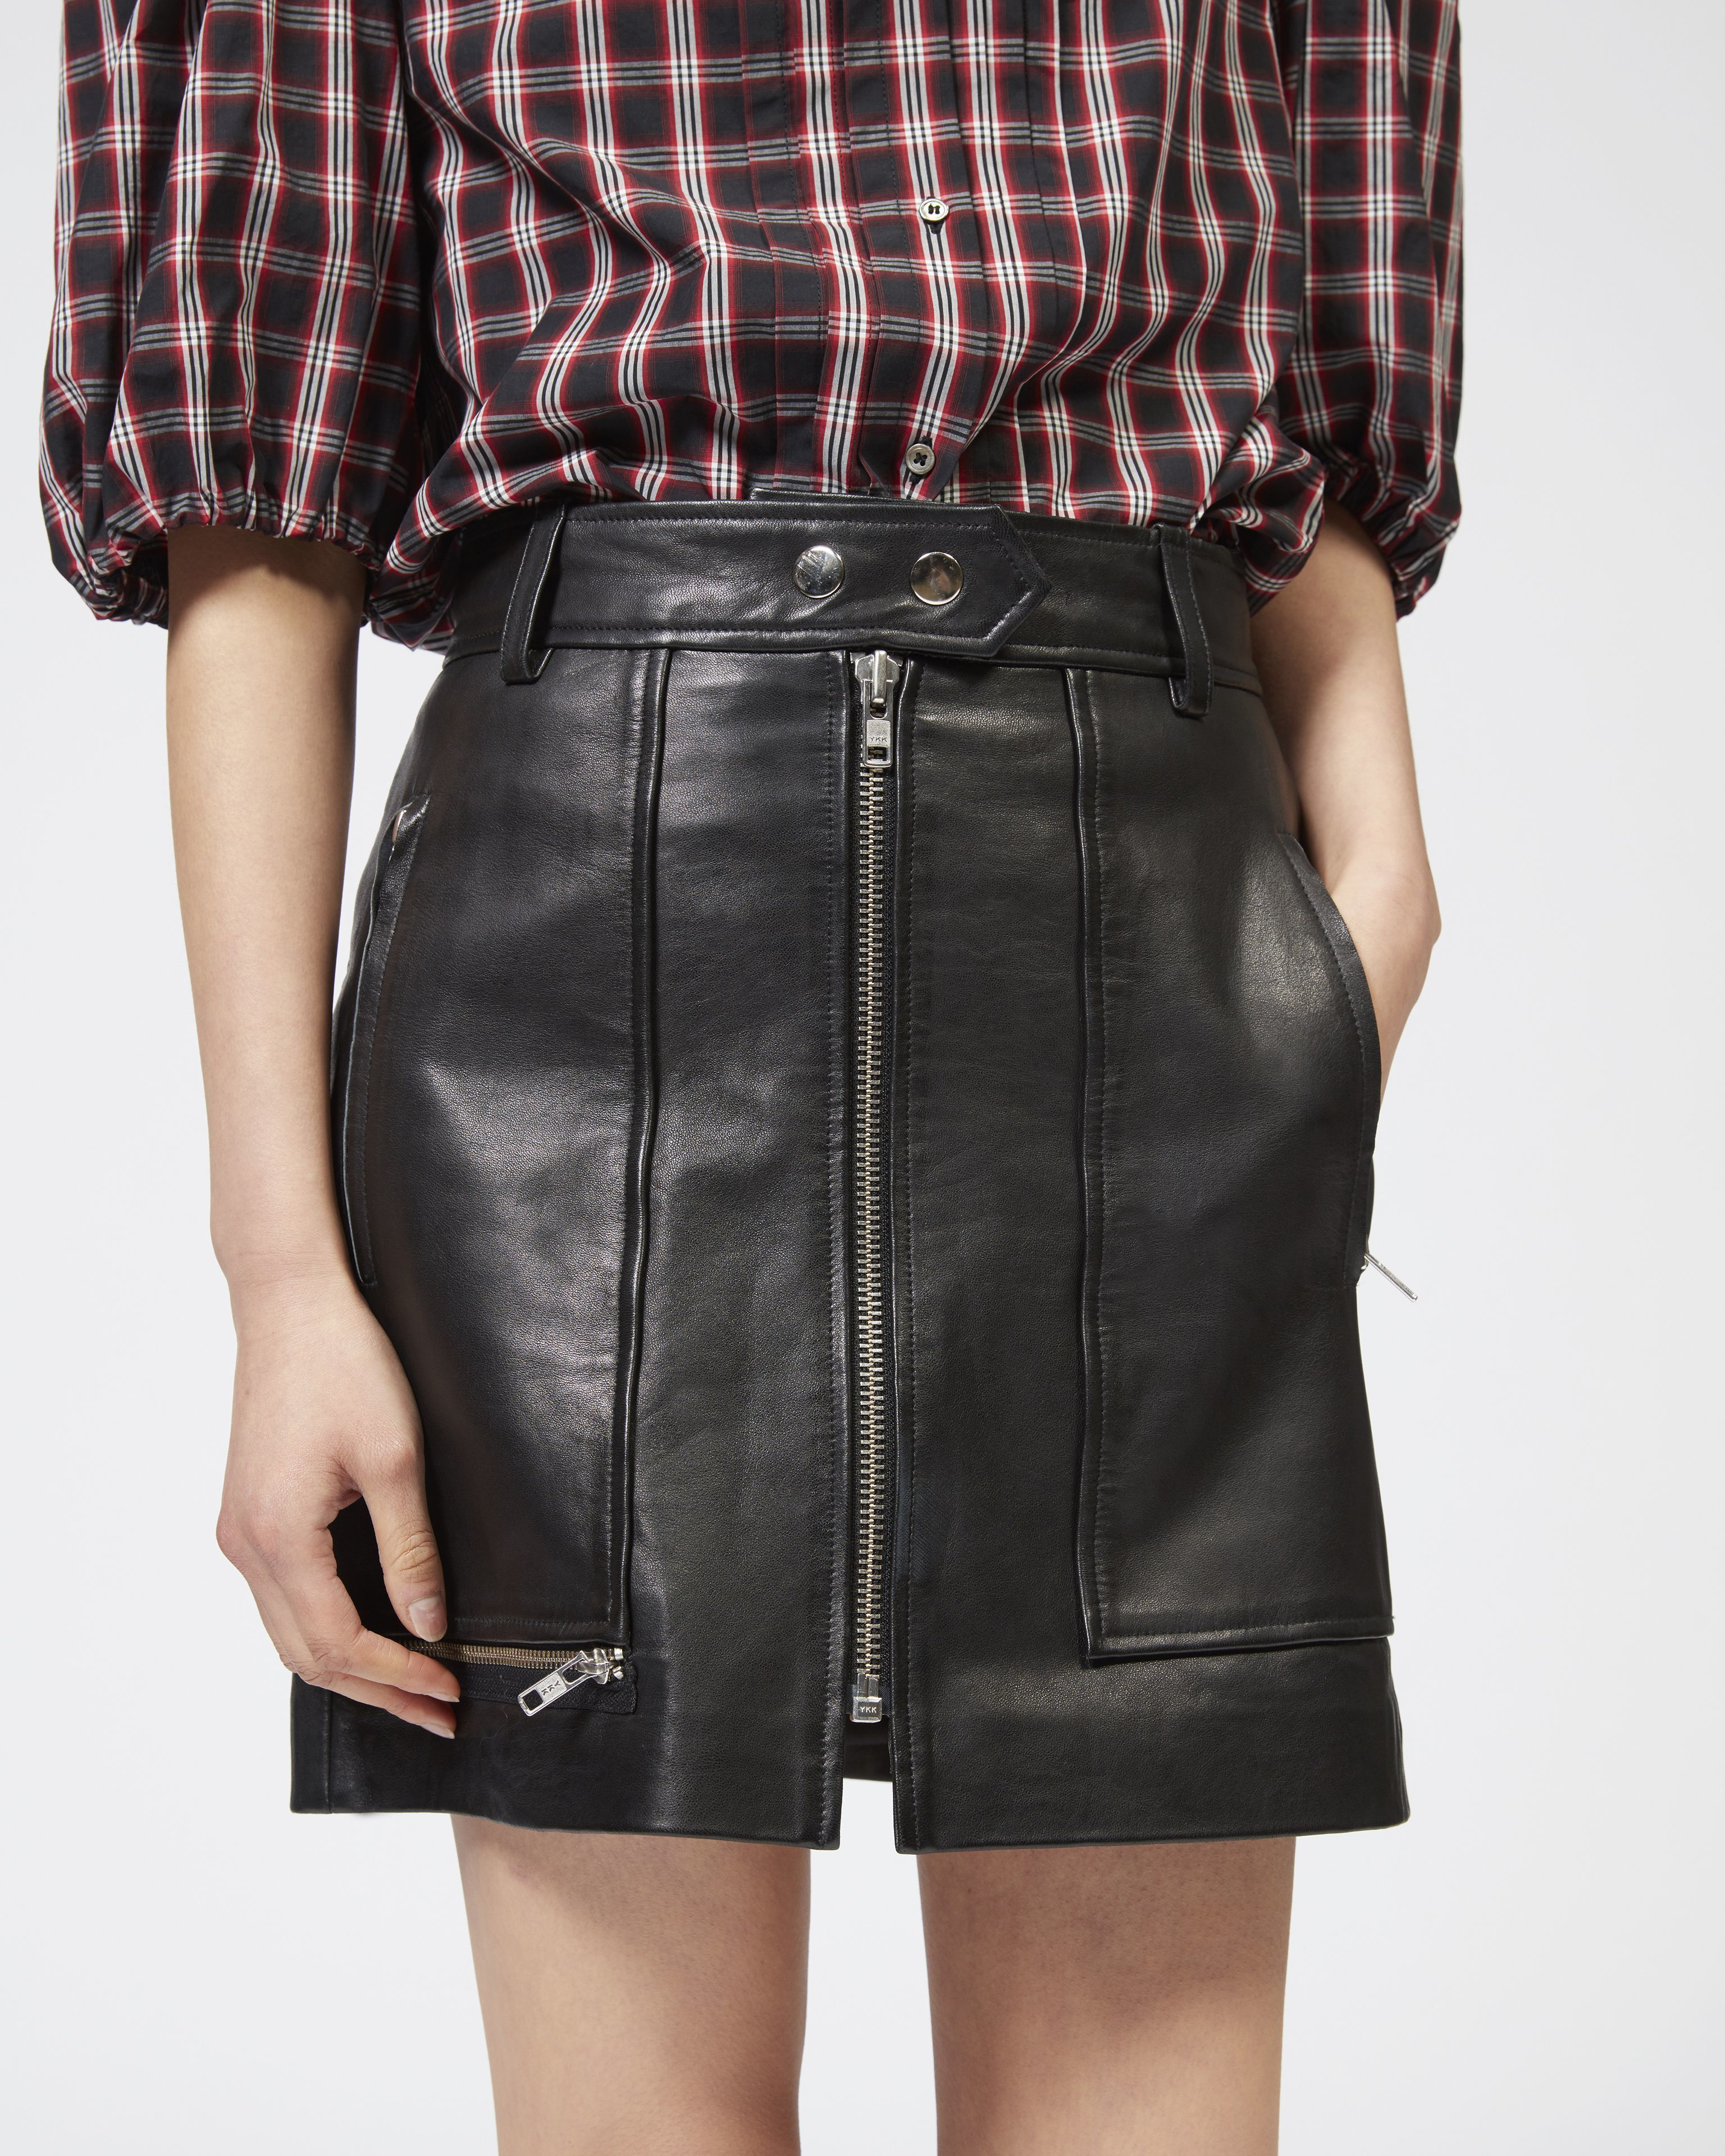 ALYNNA leather skirt